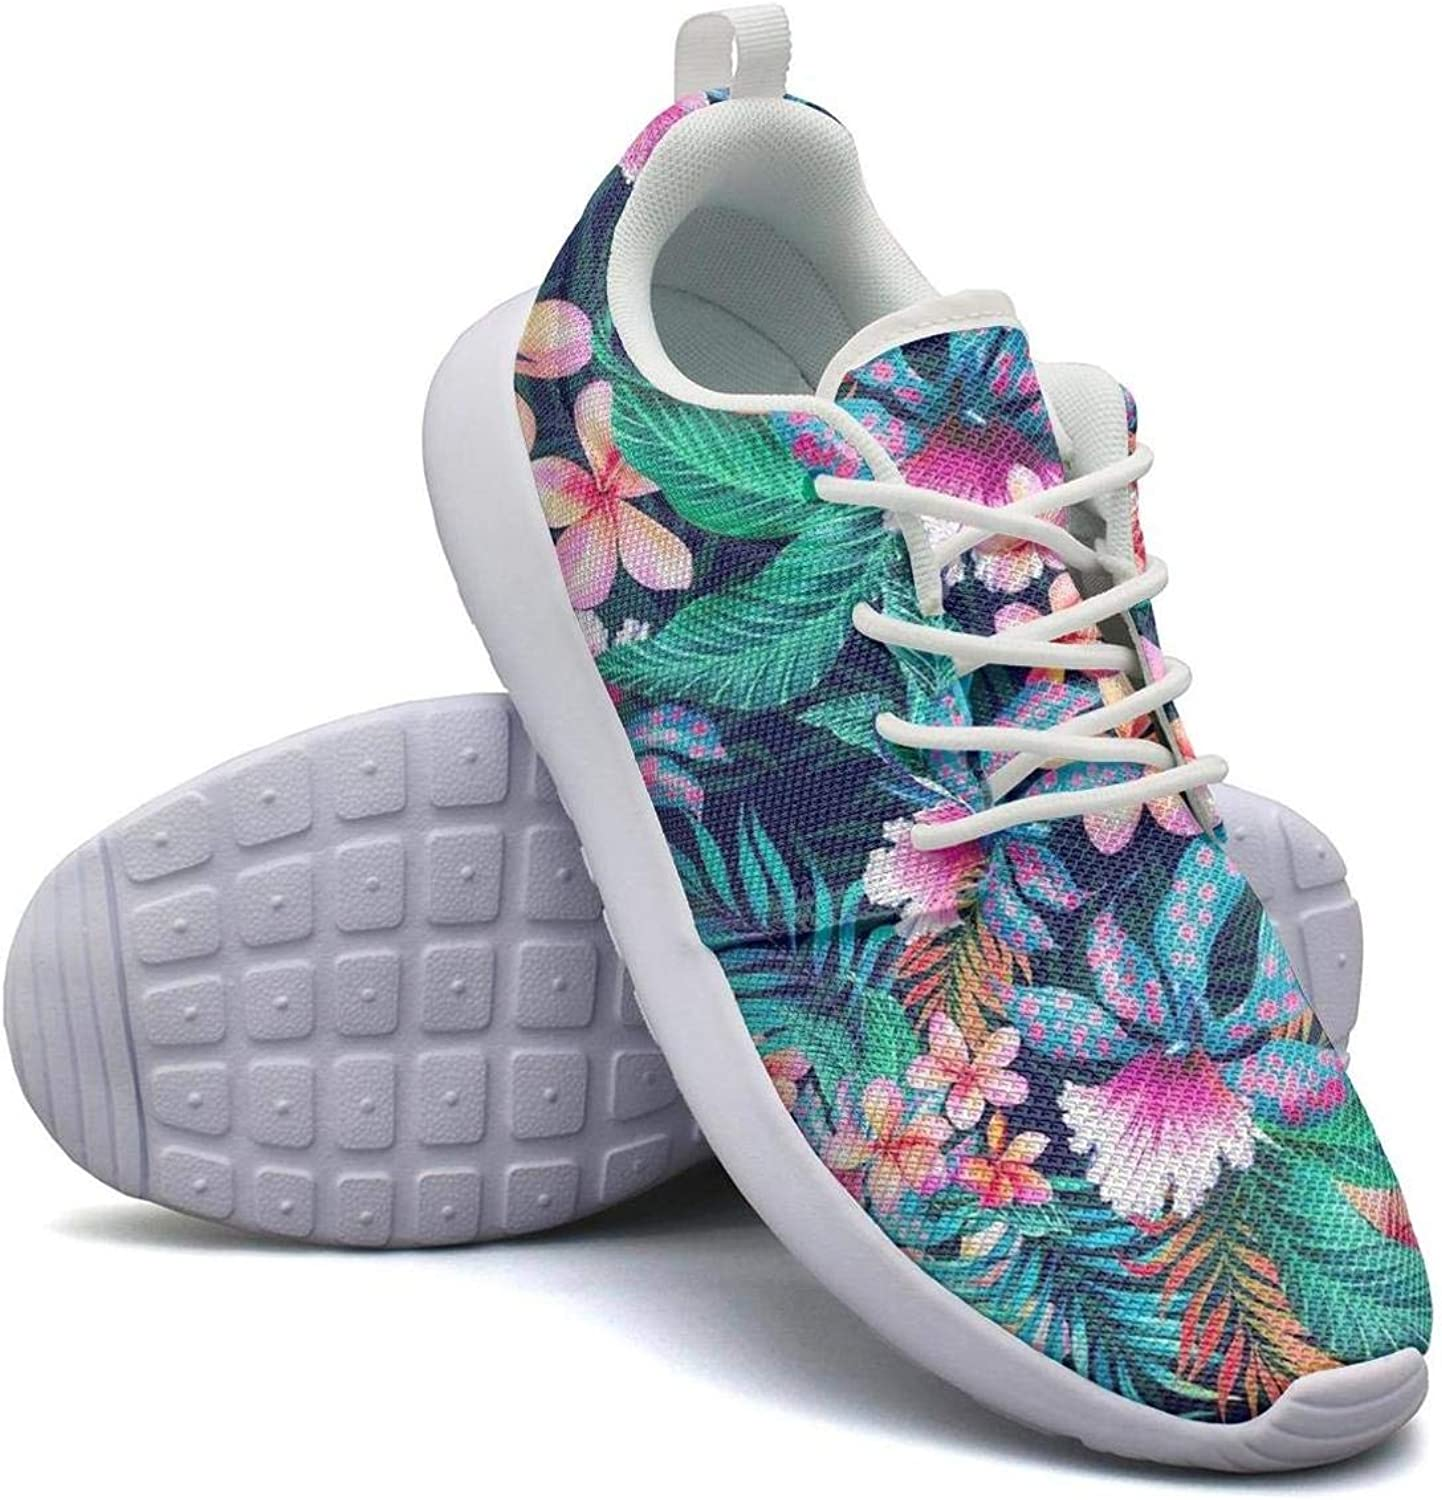 CHALi99 Womens Lightweight Mesh shoes colorful Tropical Leaves Watercolor Floral Pattern Sneakers Travel Lace-Up